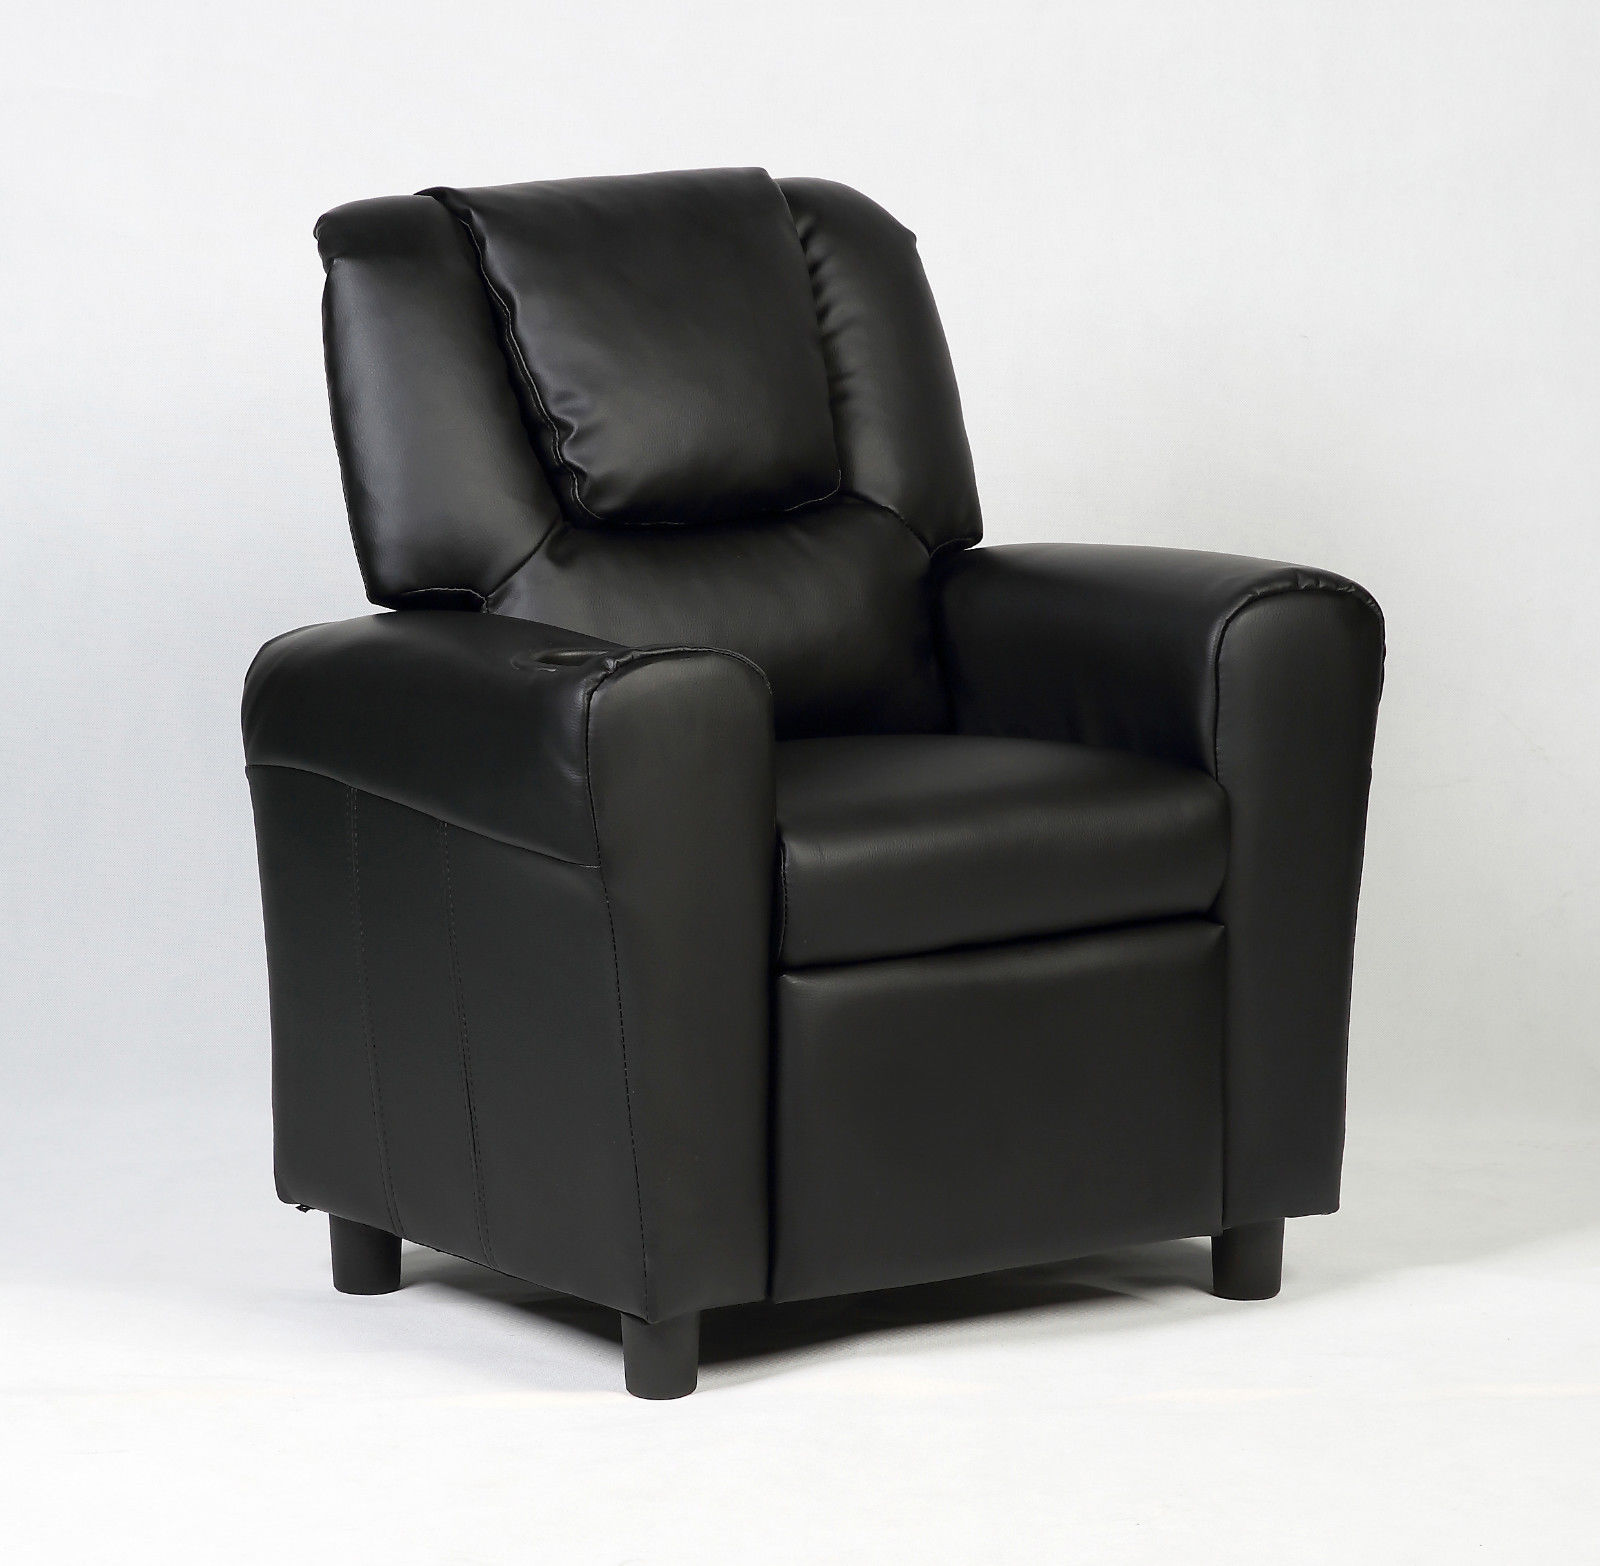 Costway Kids Recliner Armchair Children\u0027s Furniture Sofa Seat Couch Chair w/Cup Holder Black : cheap toddler recliner chairs - islam-shia.org